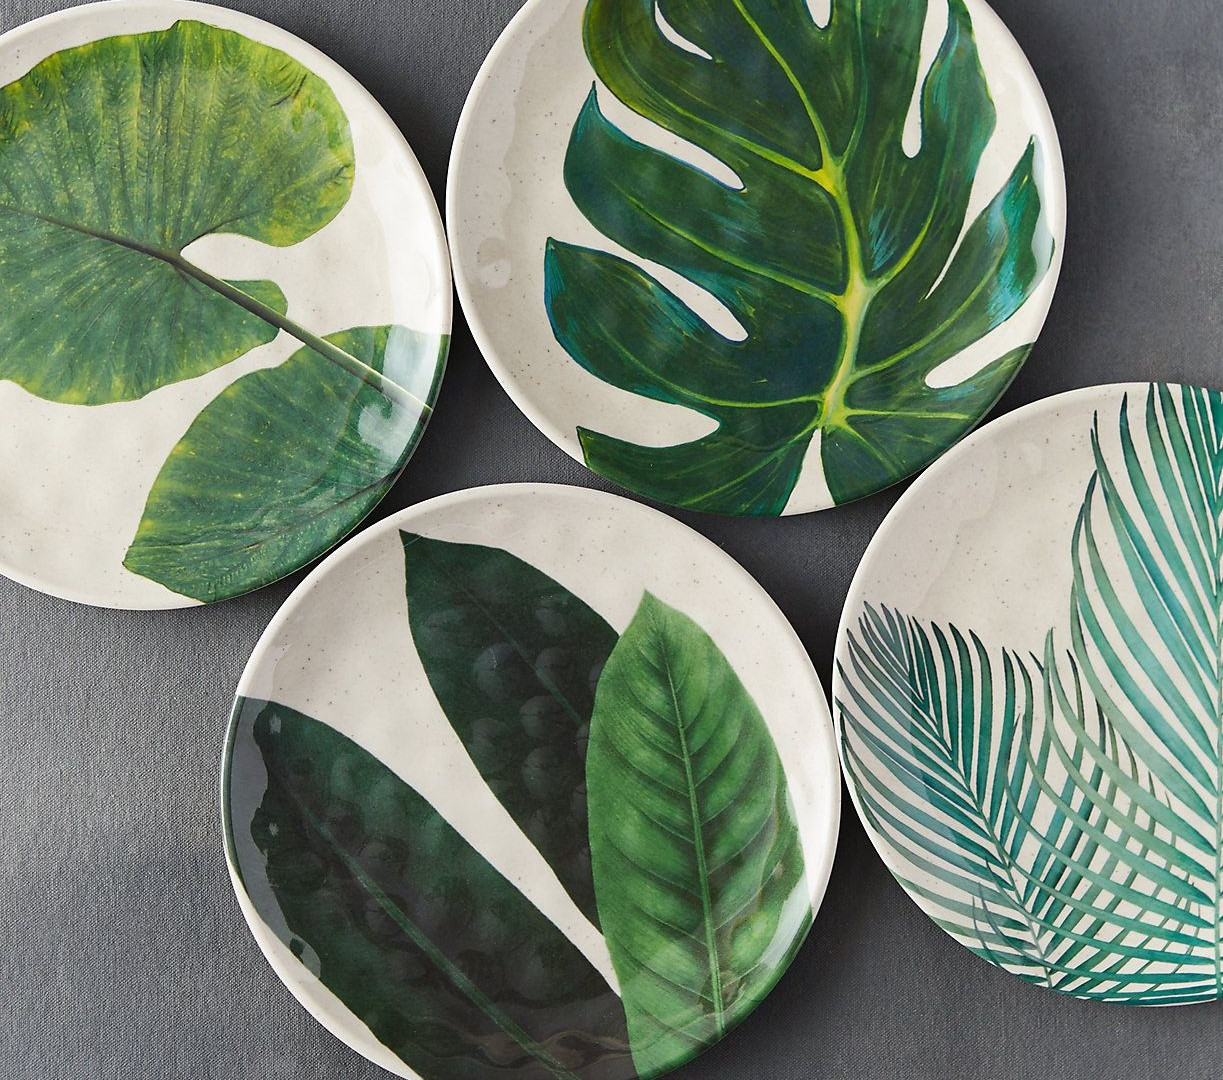 Surprise—These_Gorgeous_Plates_Are_Act